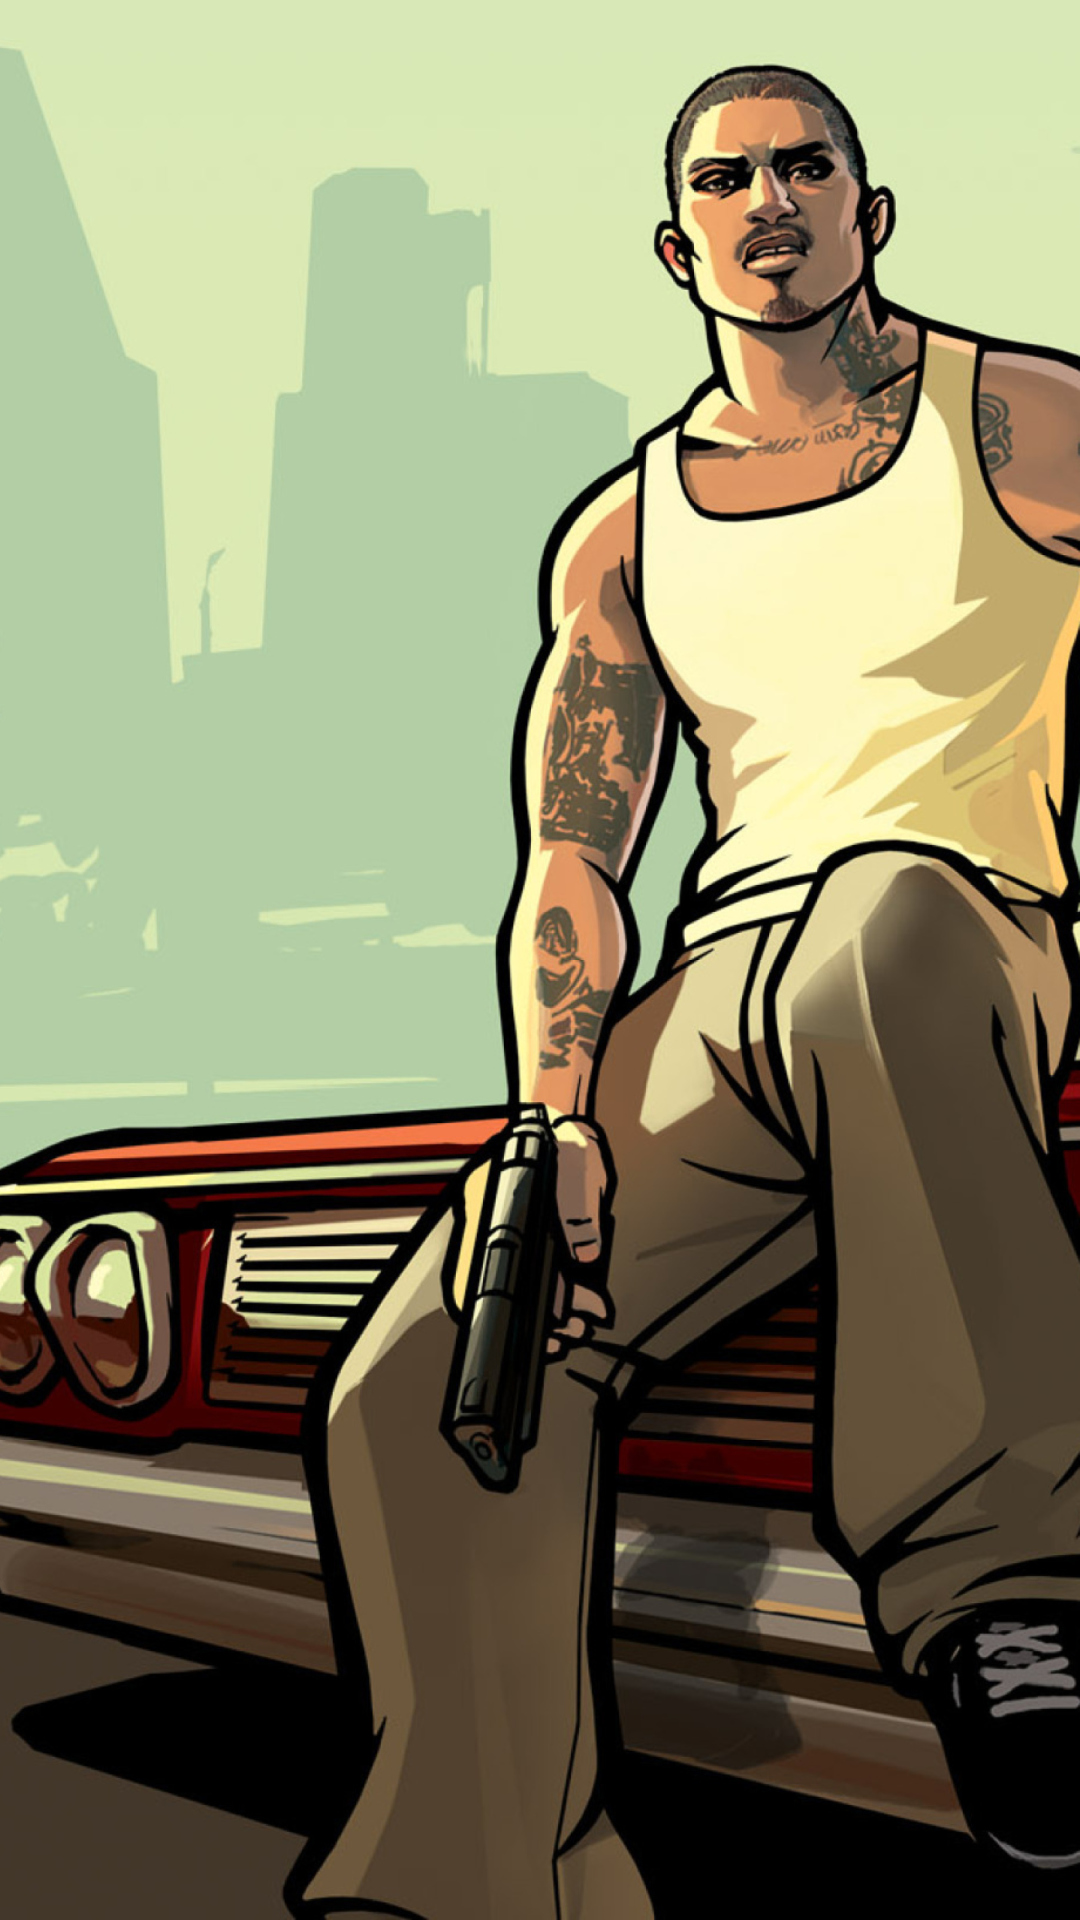 Gta San Andreas wallpaper 1080x1920